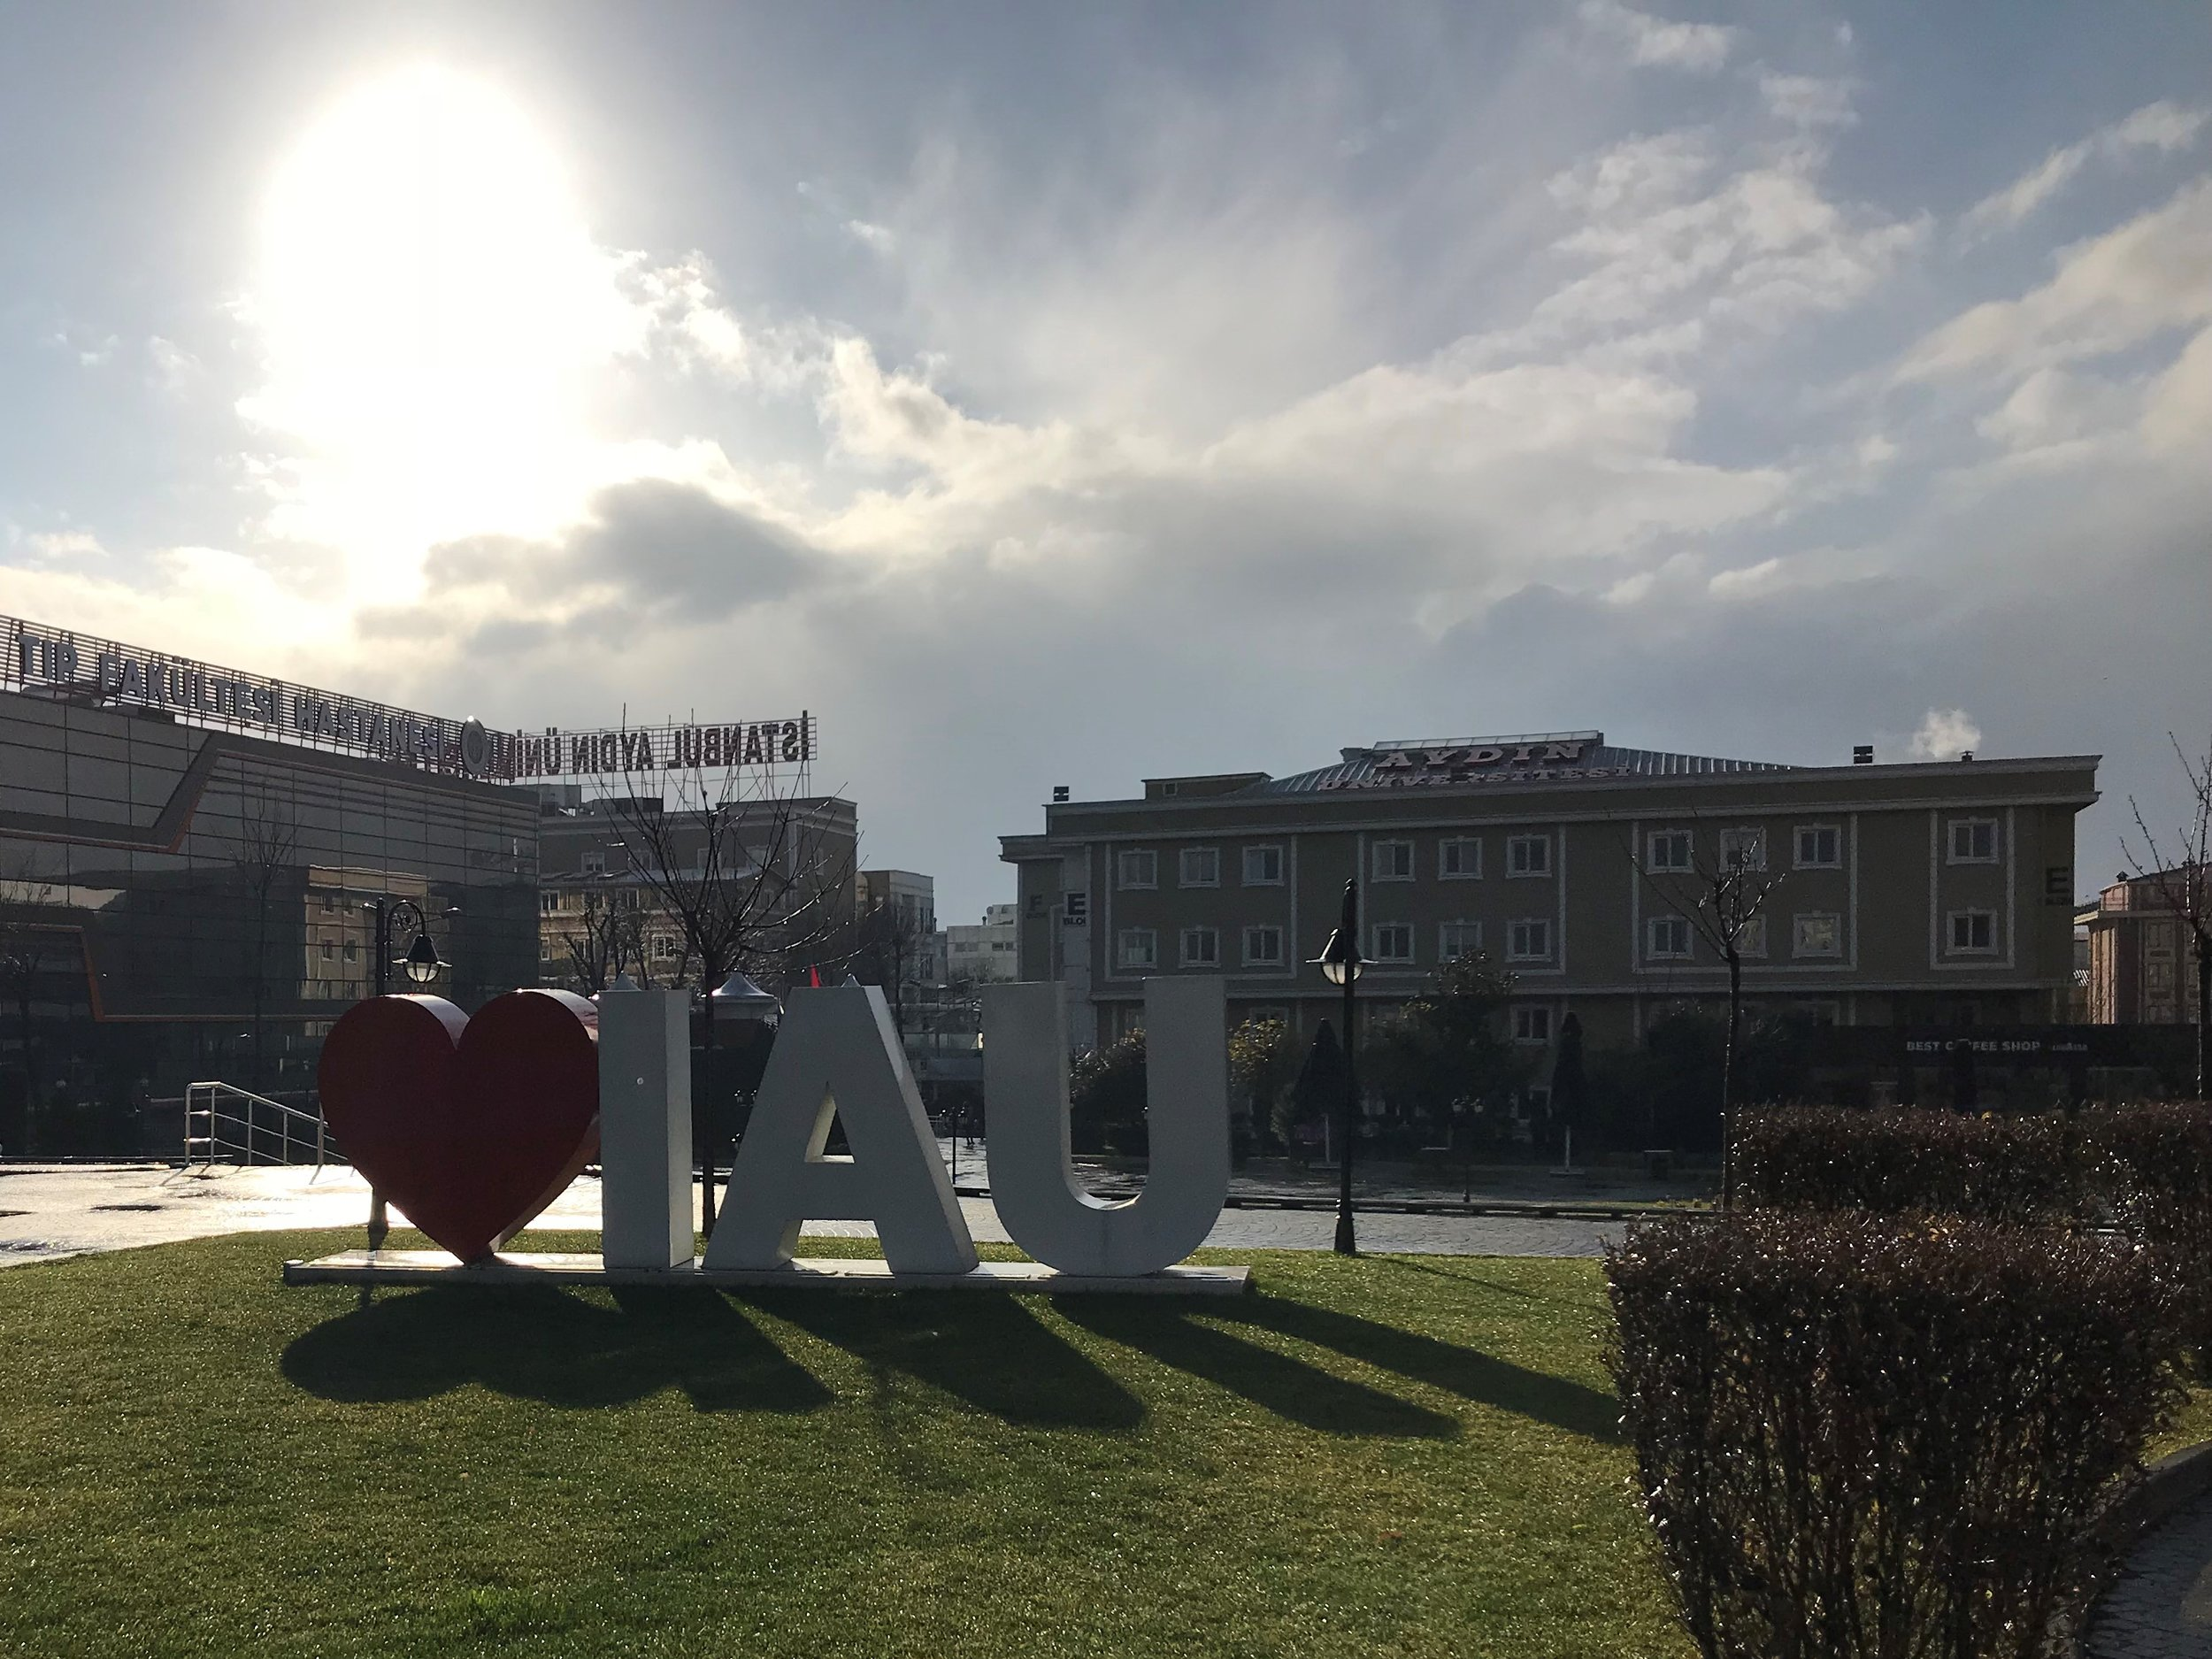 A beautiful afternoon at Istanbul Aydin University in January 2018.